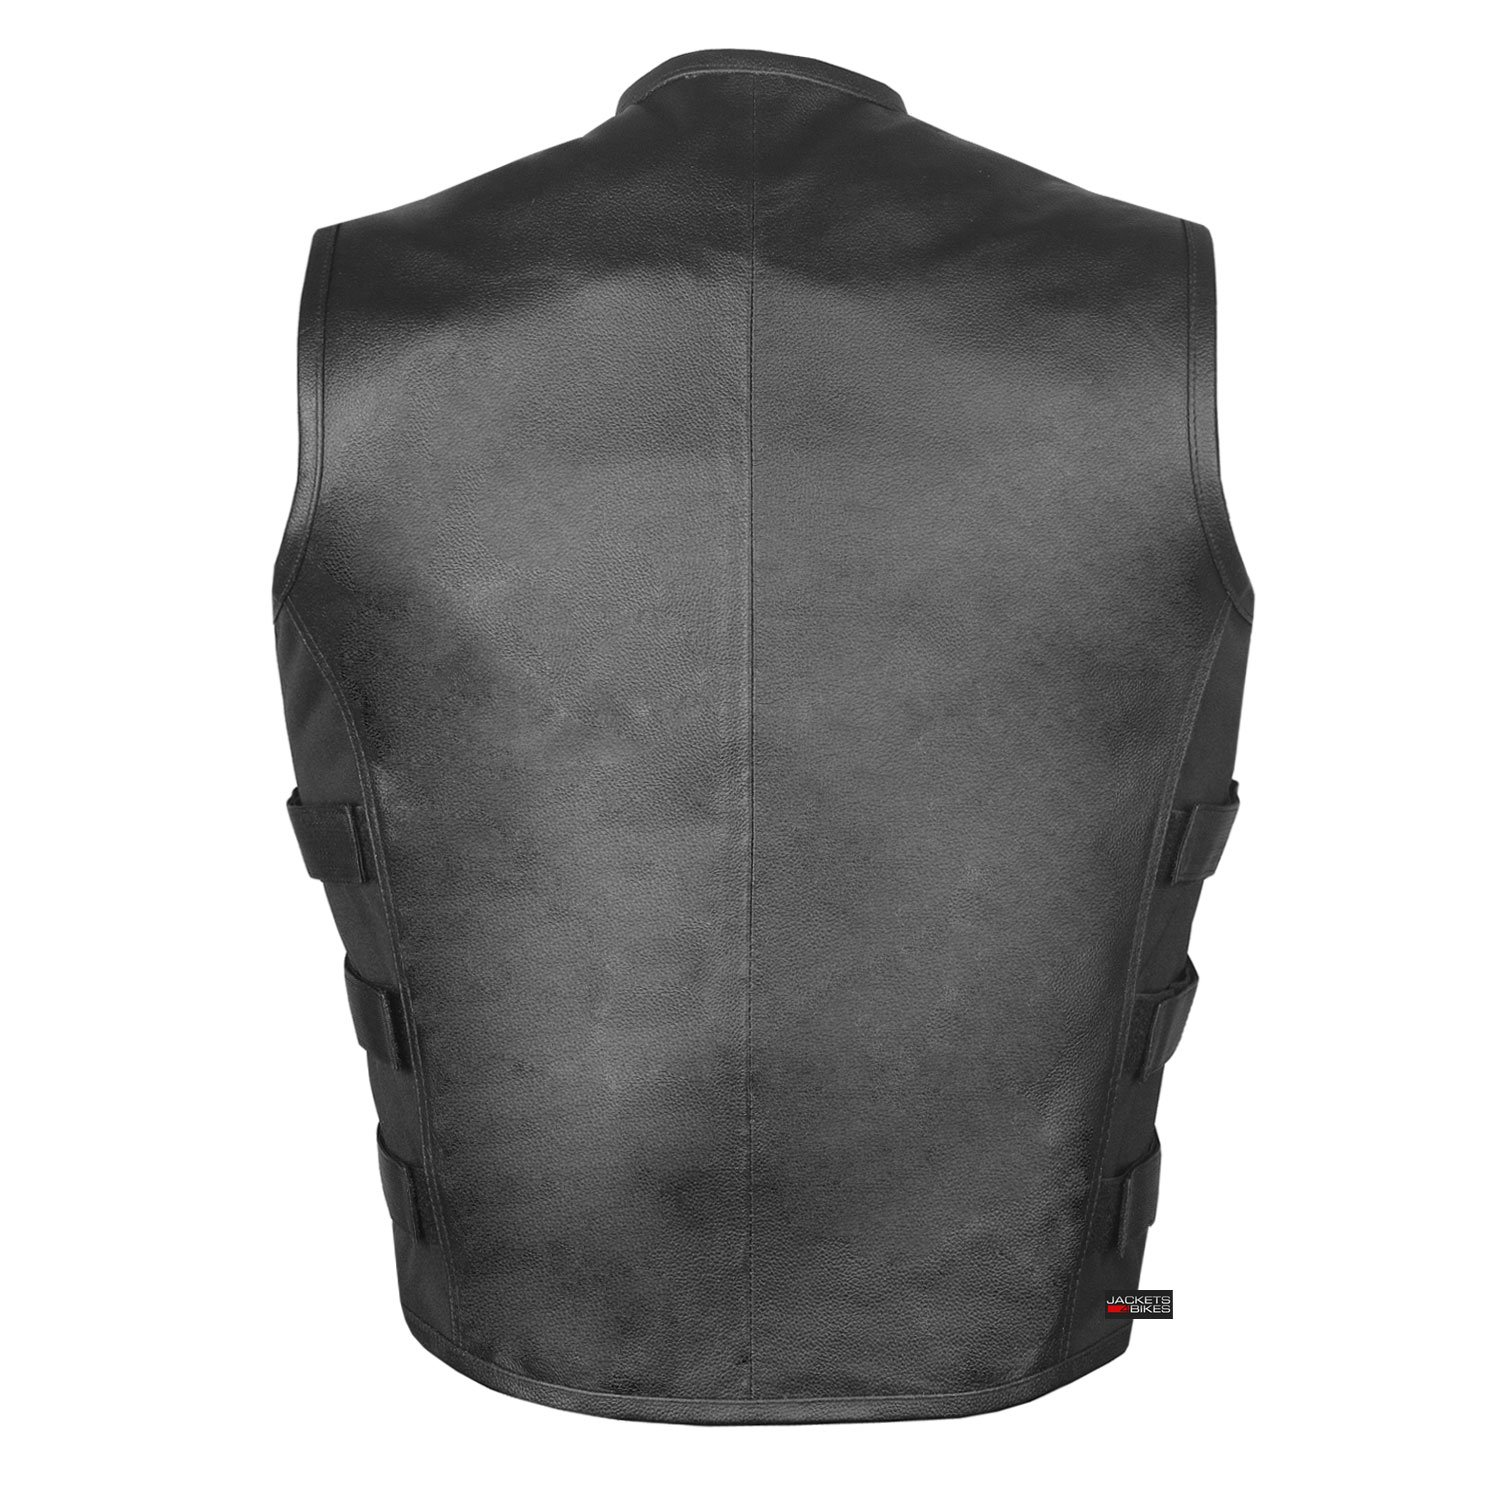 Men's Biker Swat Style Armor Motorcycle Leather Vest Conceal Carry Pockets XXL by Jackets 4 Bikes (Image #3)